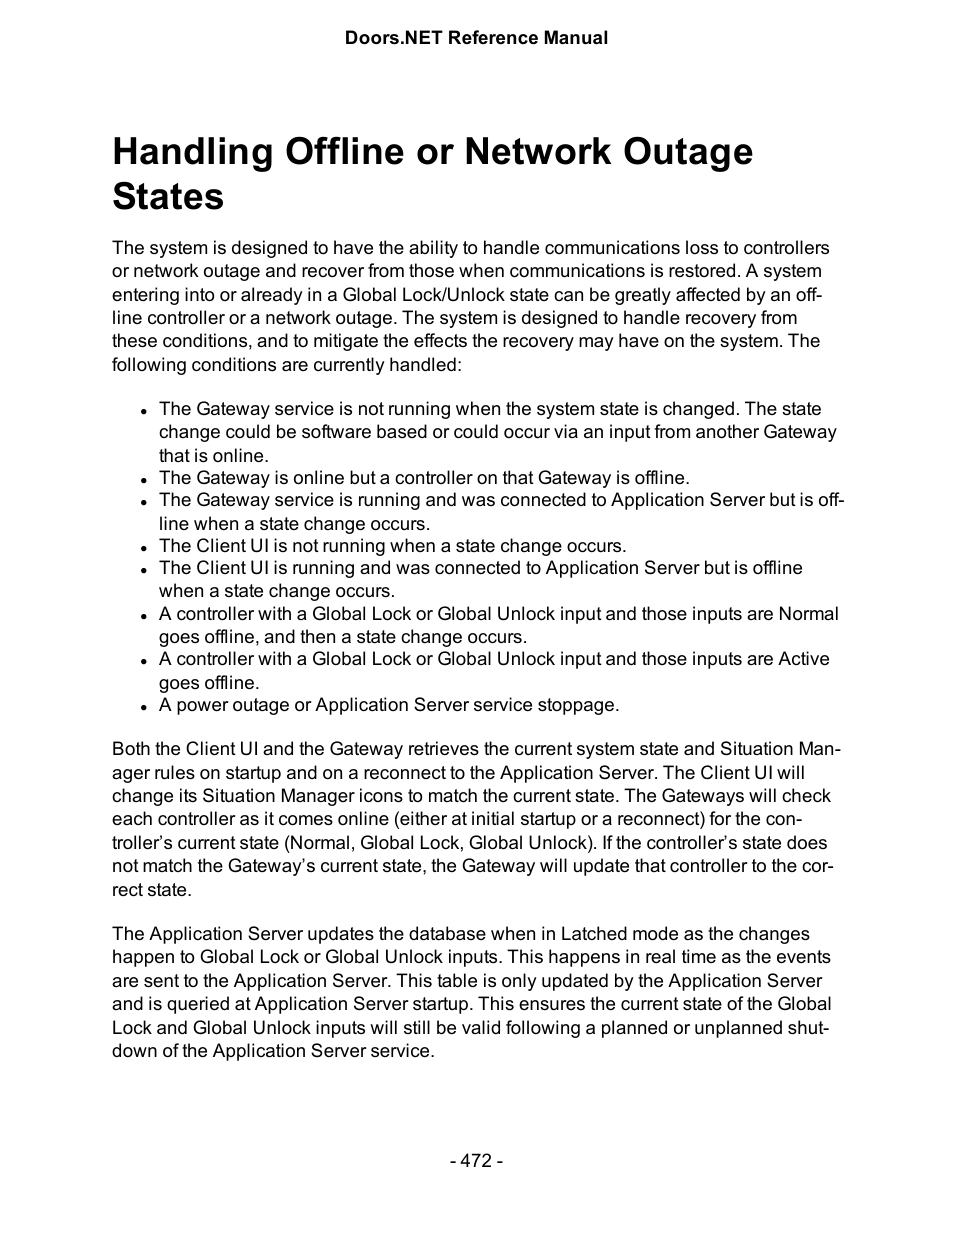 Handling offline or network outage states | Keri Systems Doors.NET Manual User Manual | Page 472 / 602